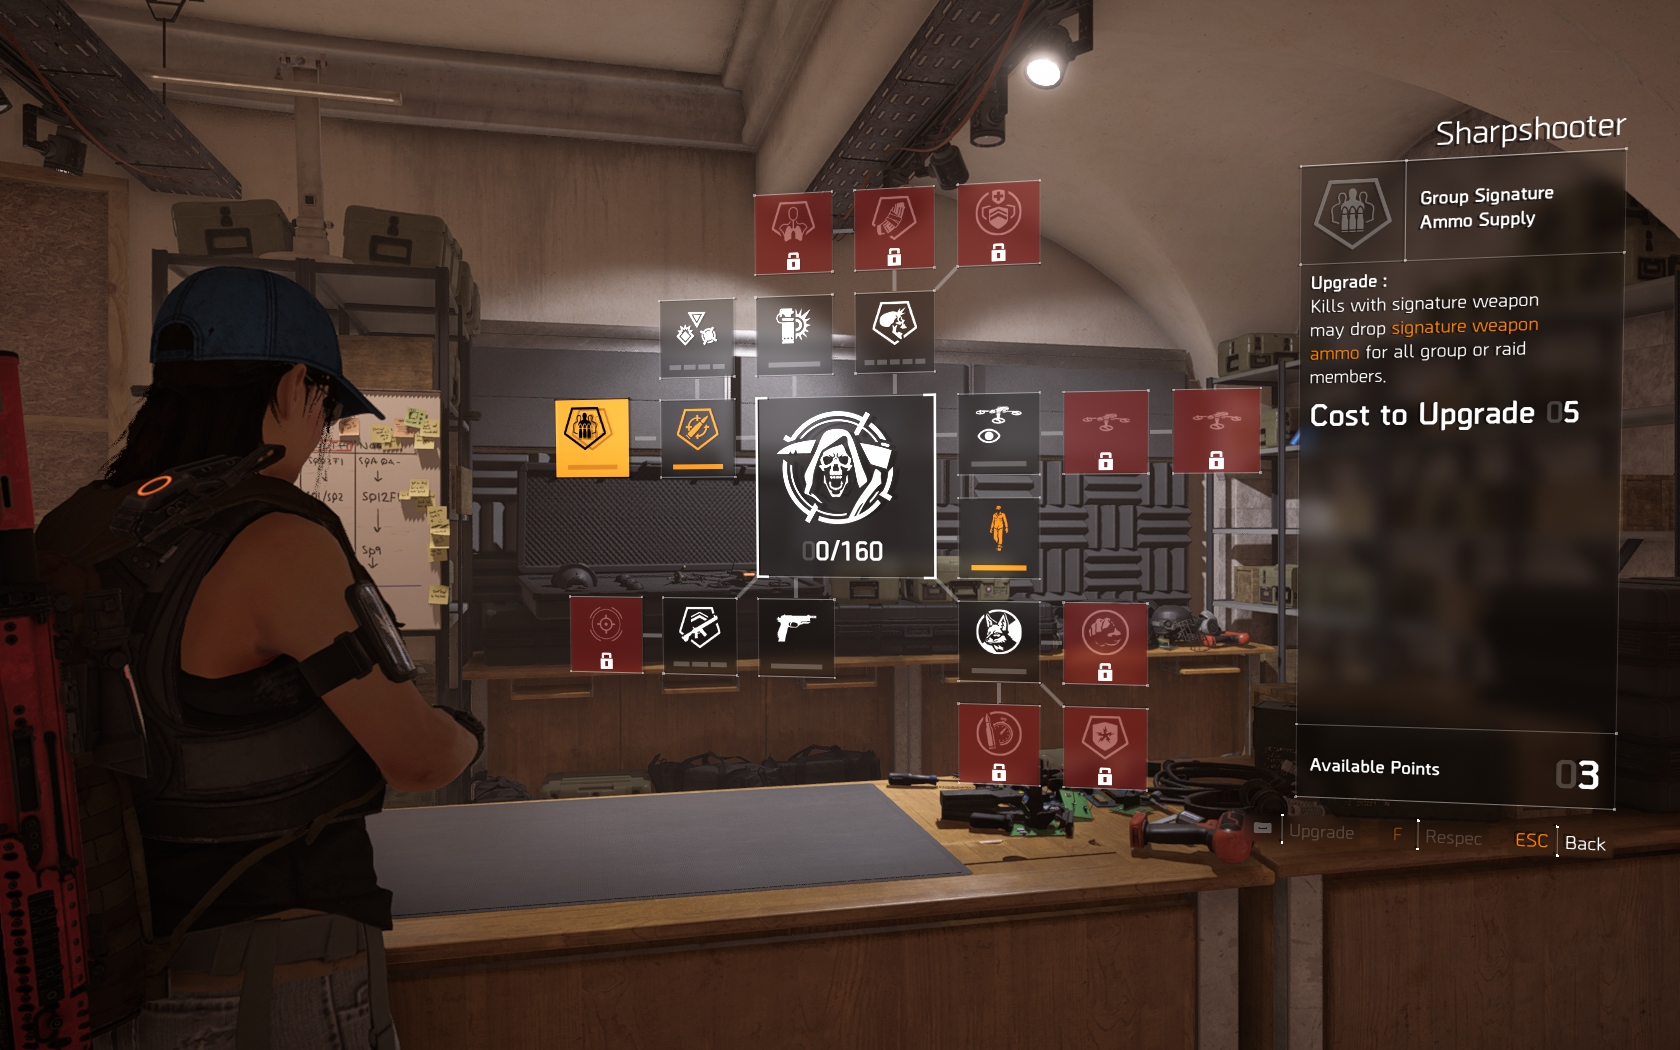 Tom Clancy's The Division 2 Screenshot 2019.03.24 - 05.46.40.99.png